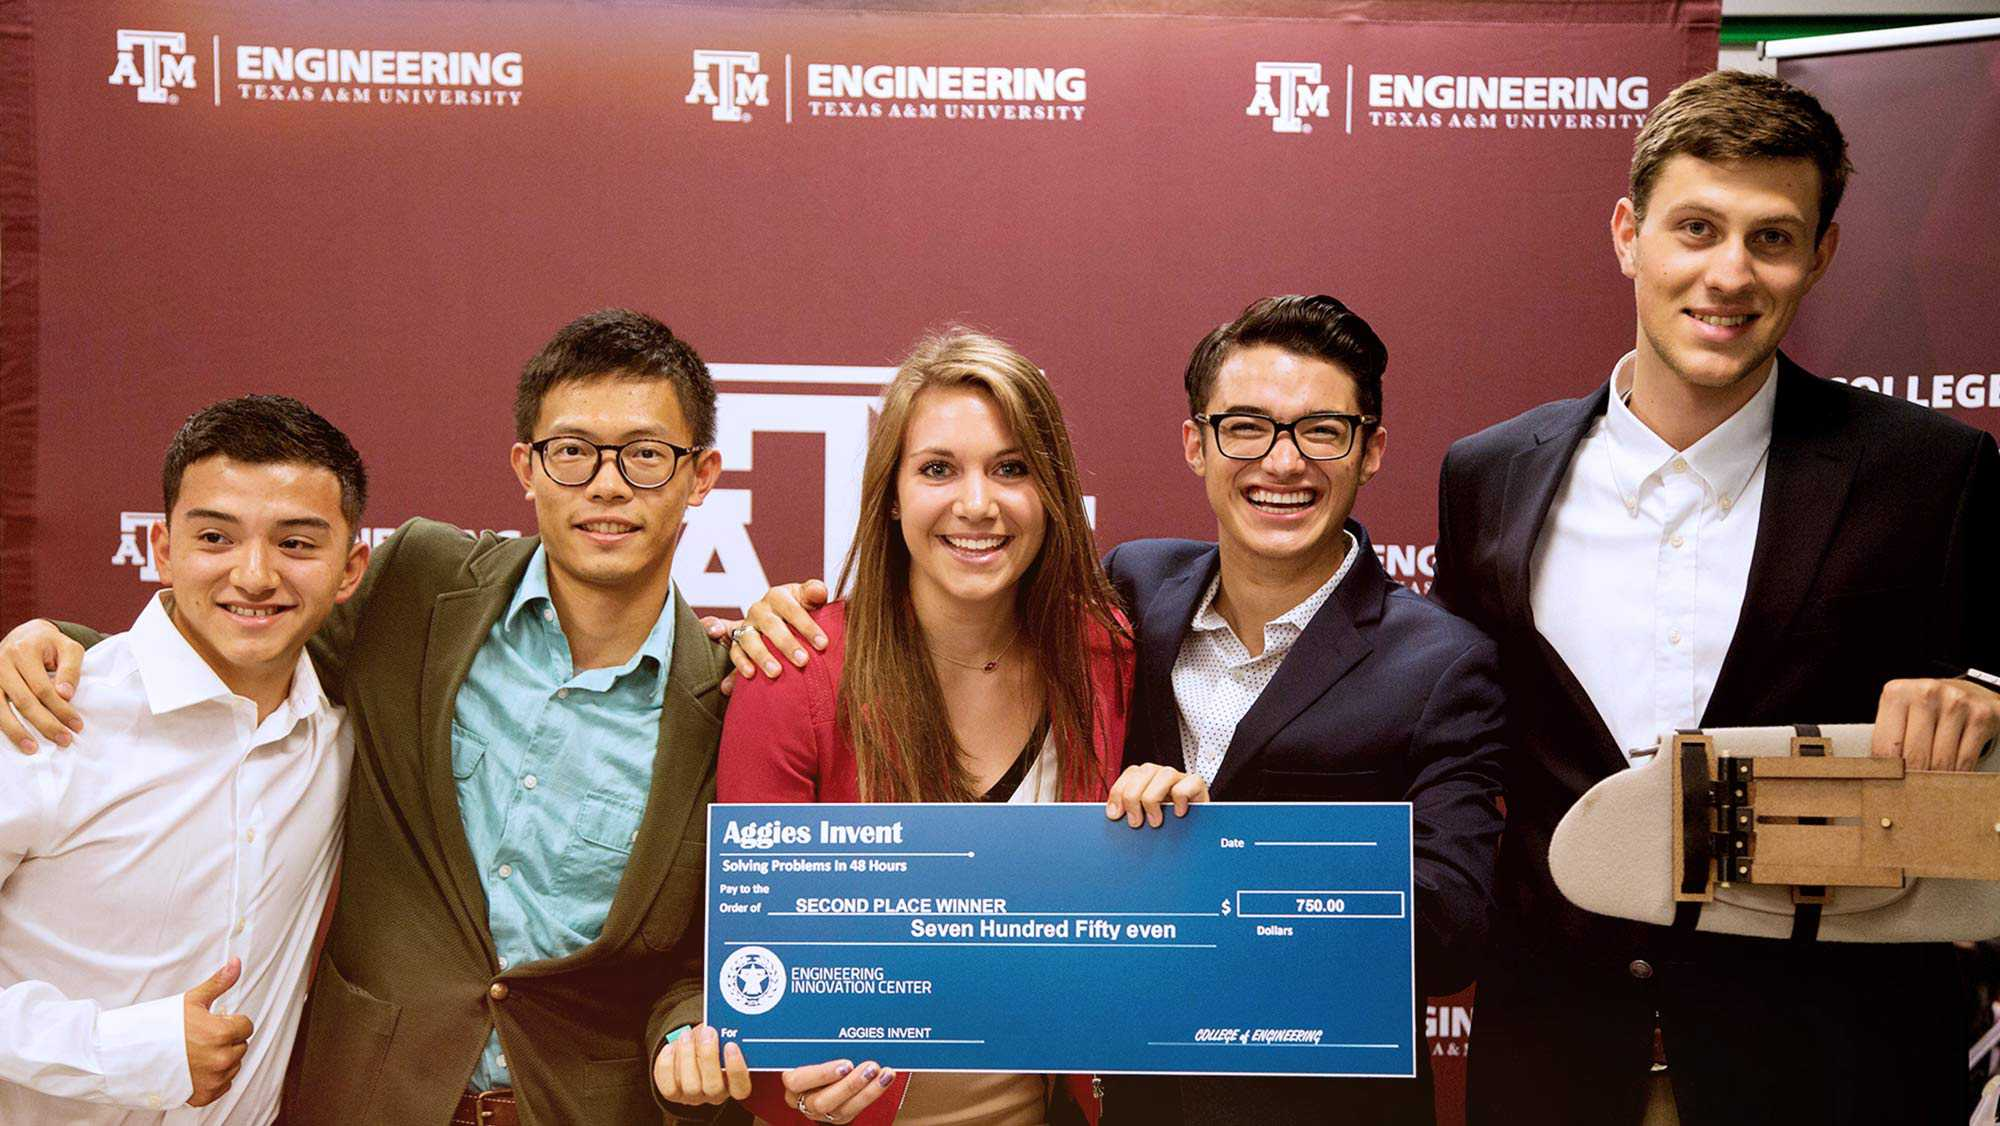 Aggies Invent winning team students